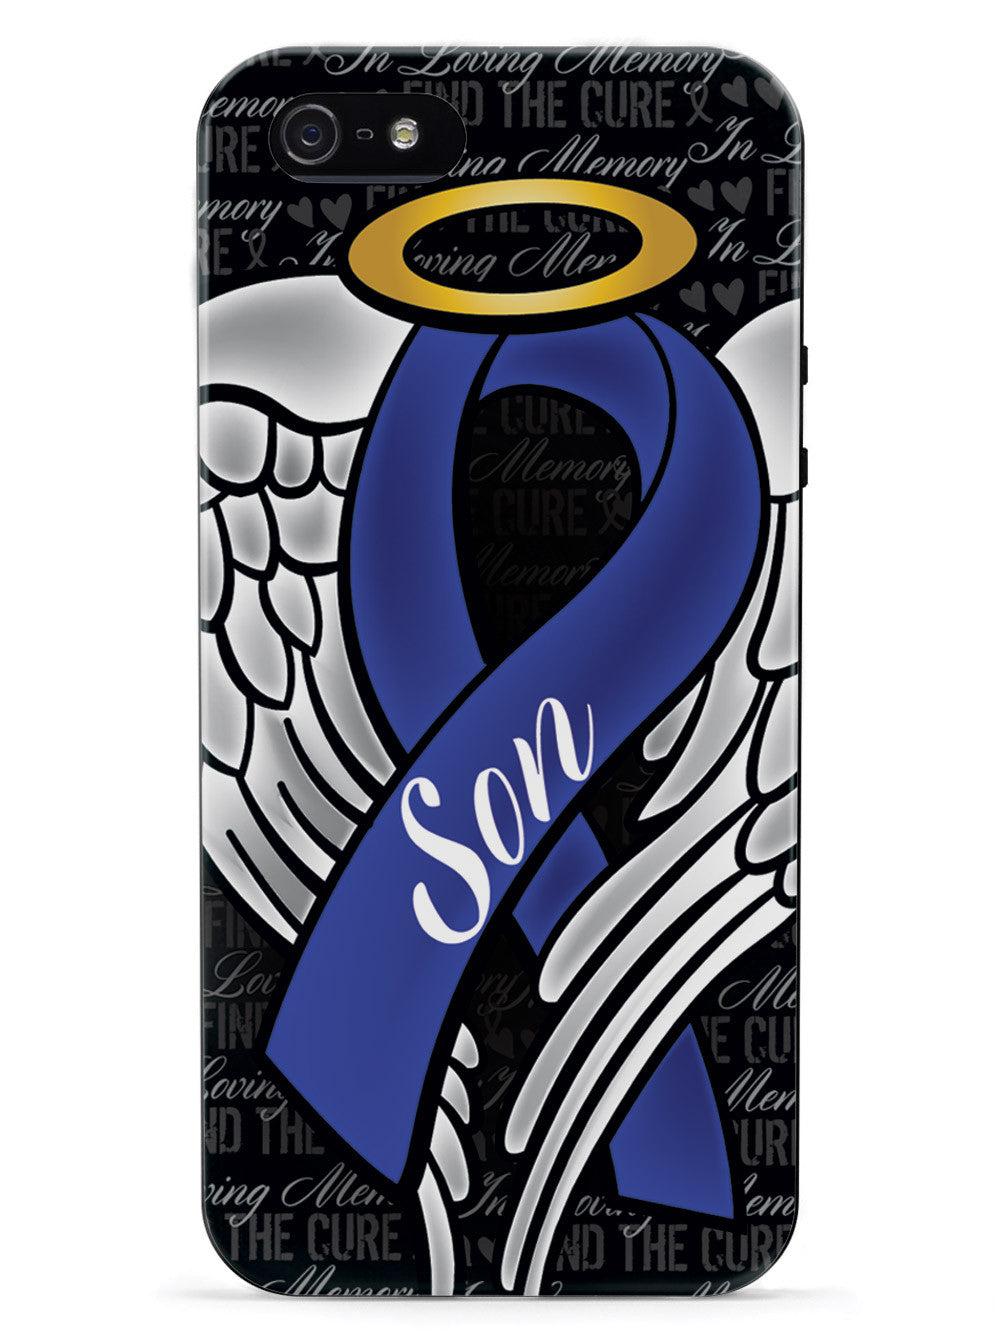 In Loving Memory of My Son - Blue Ribbon Case